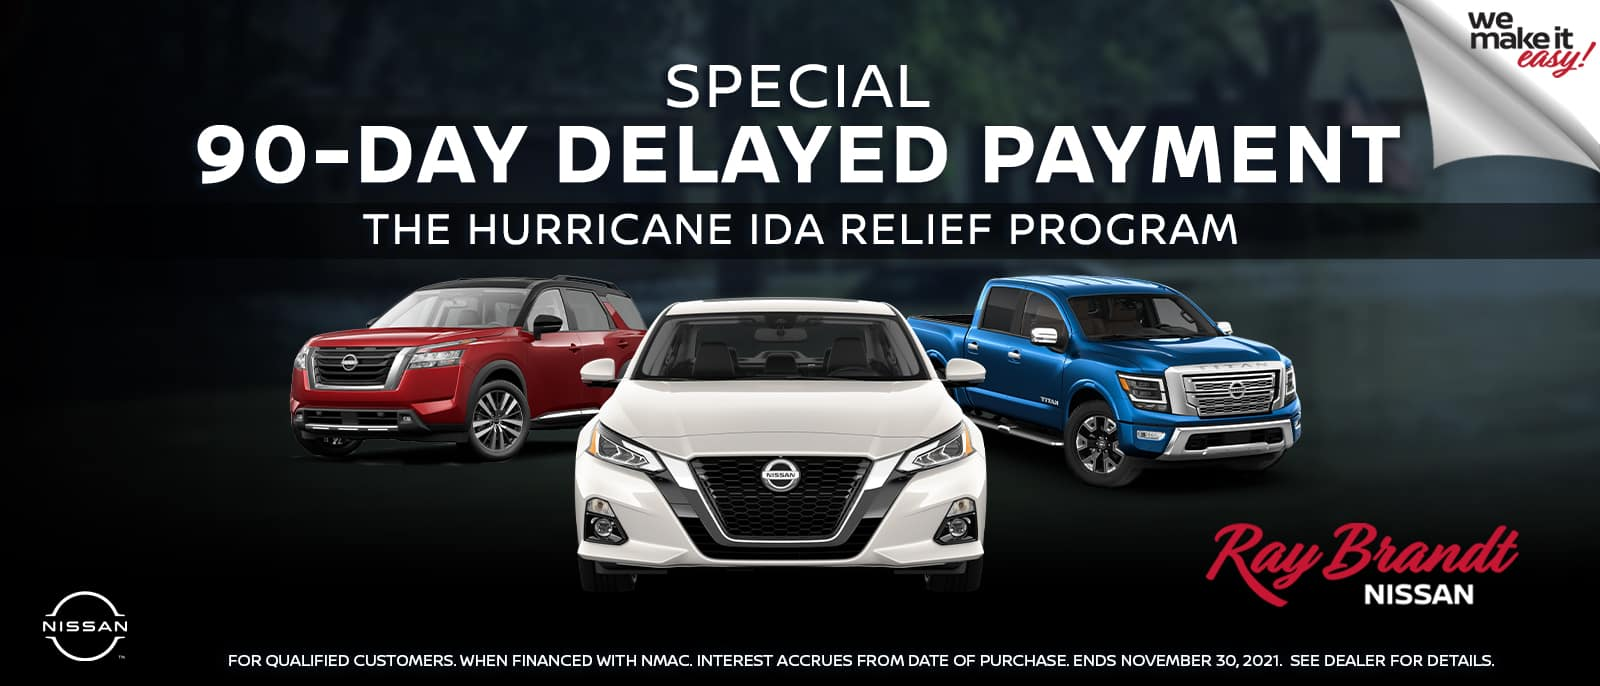 Nissan 90-Day Delayed Payment